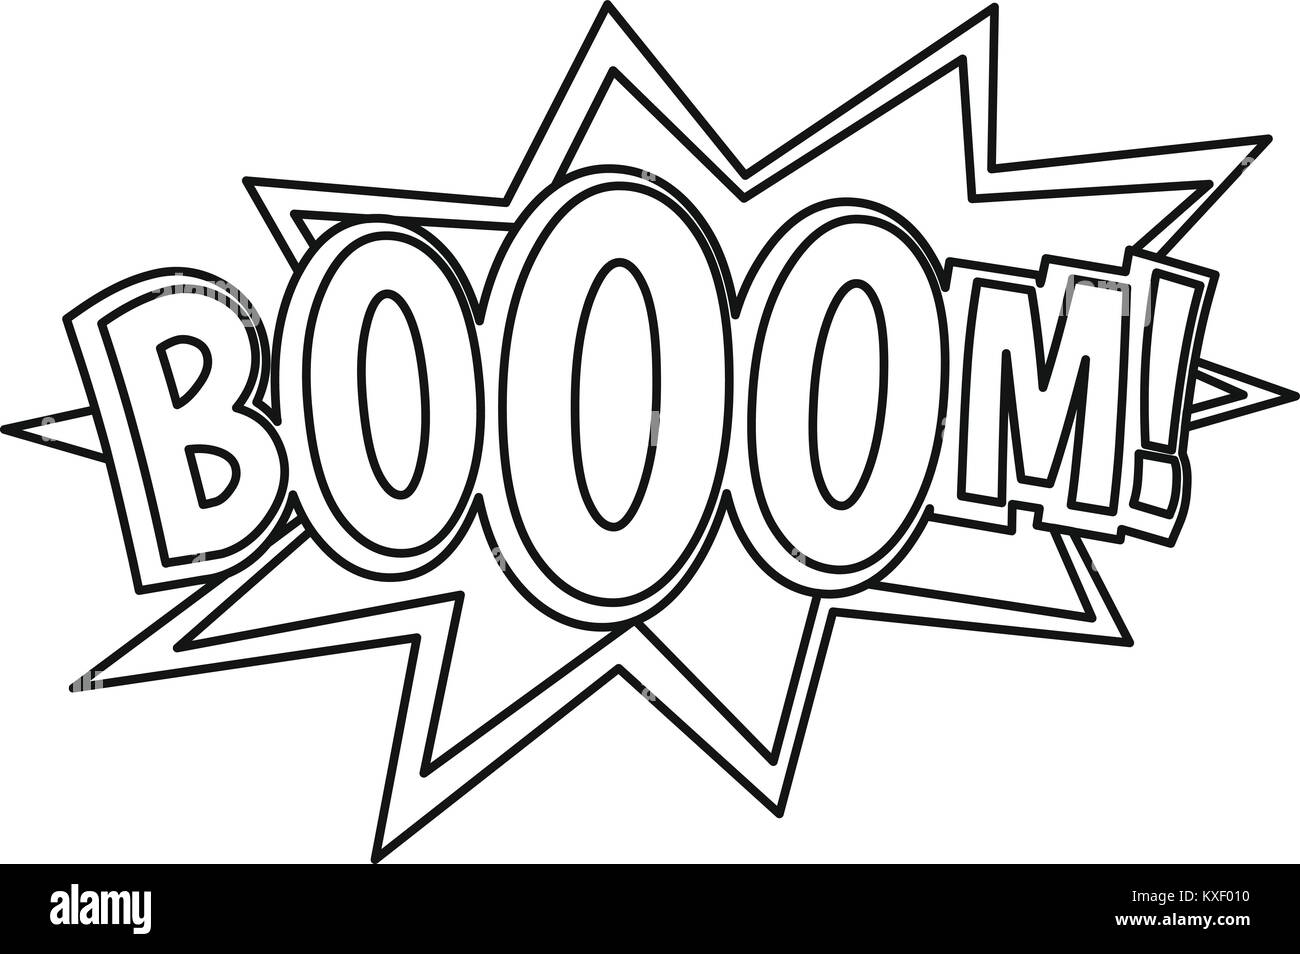 Boom Comic Book Explosion Icon Outline Style